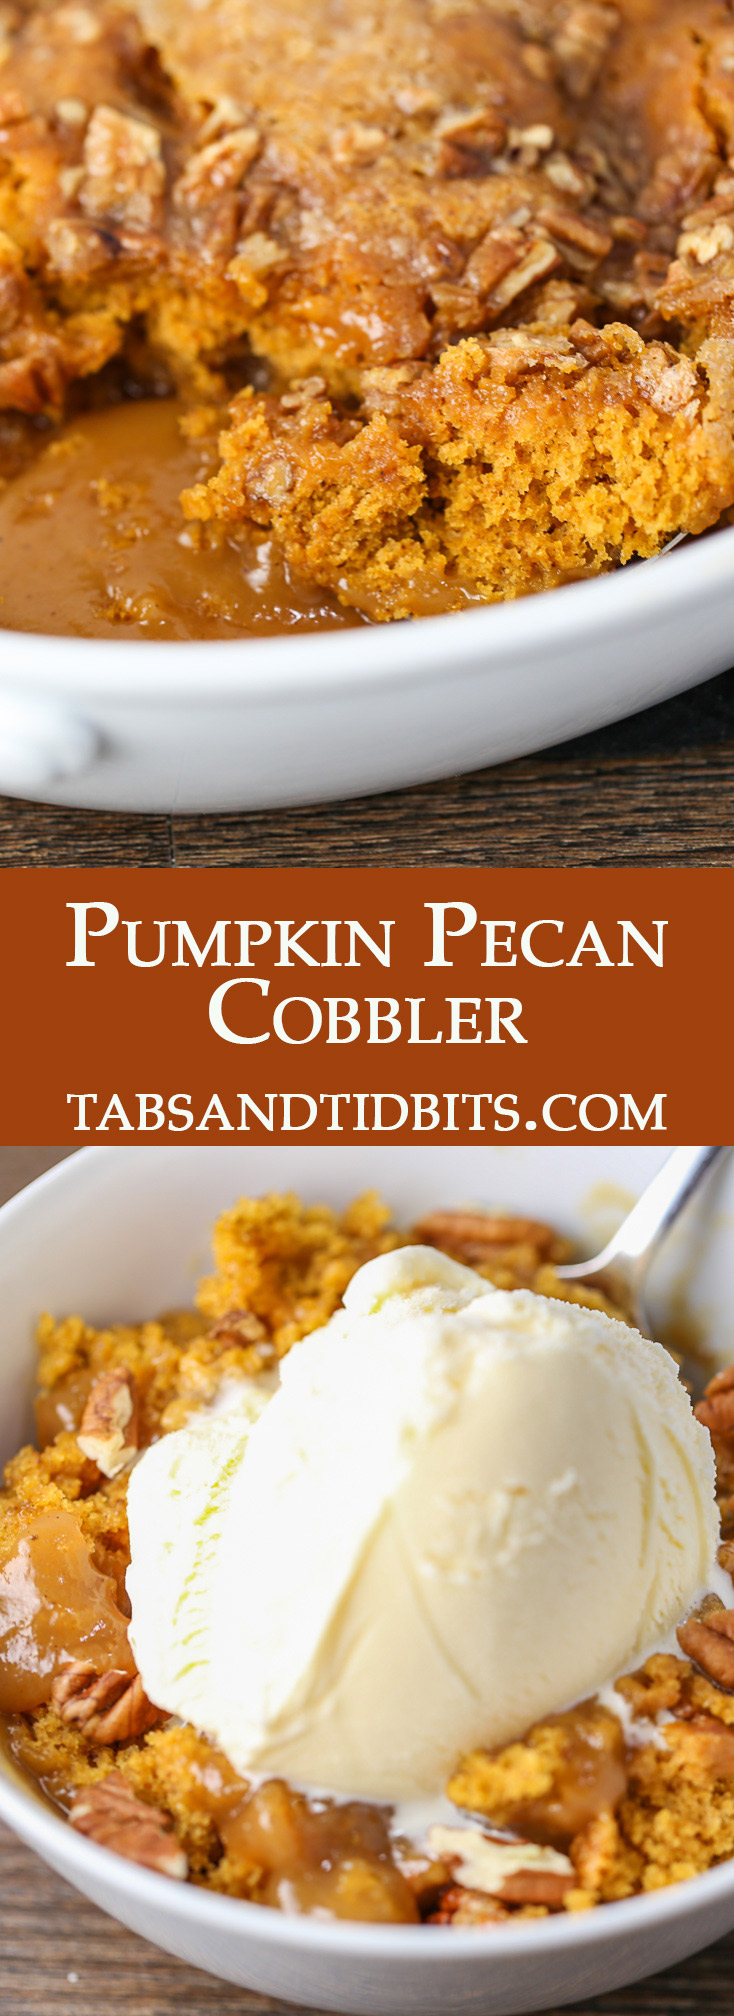 A pumpkin spice cake-like cobbler with a surprise hot caramel sauce on the bottom. Best served with a generous scoop of vanilla ice cream!